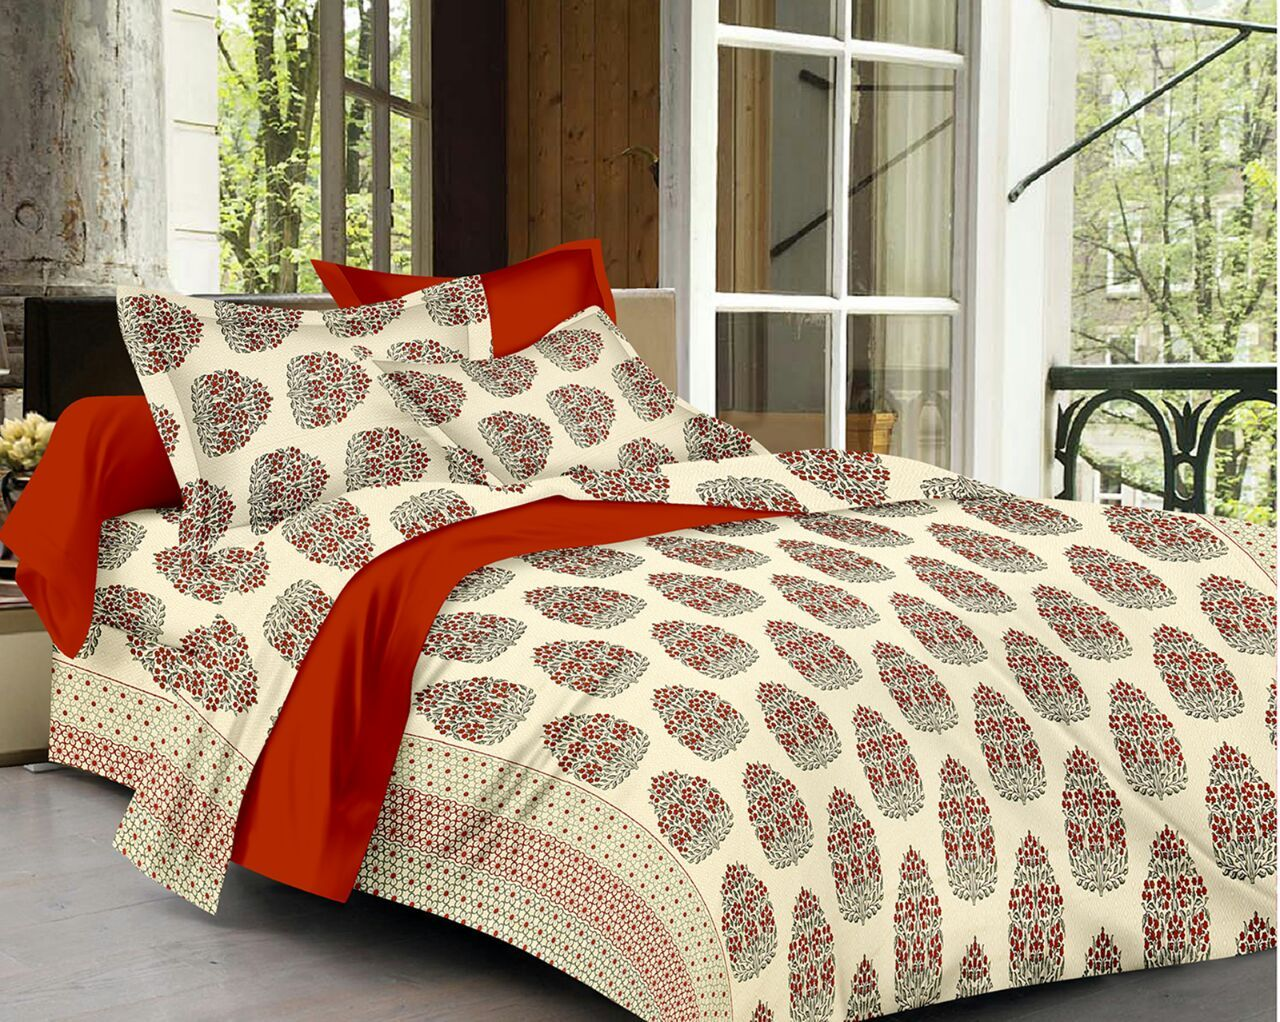 "Get Rs.50 off on bedsheets! Use coupon code ""Bedsheet50"